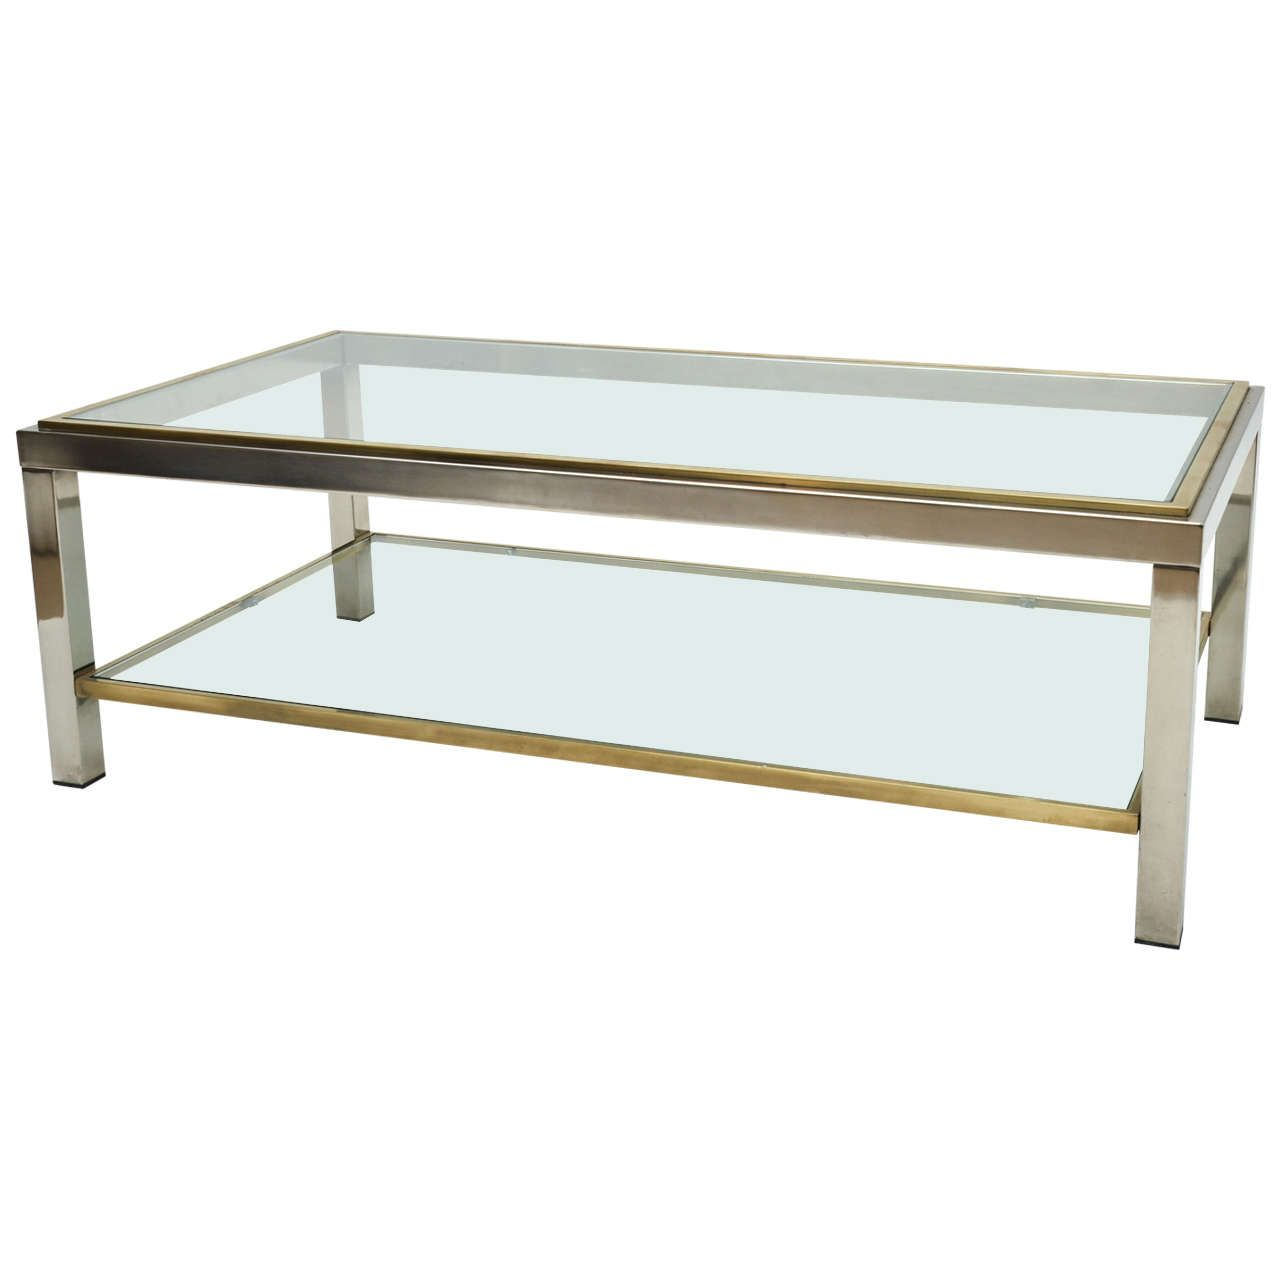 Mid Century Modern French Brass And Chrome Glass Coffee Table Coffee Table Antique Coffee Tables Living Room Coffee Table [ 1280 x 1280 Pixel ]